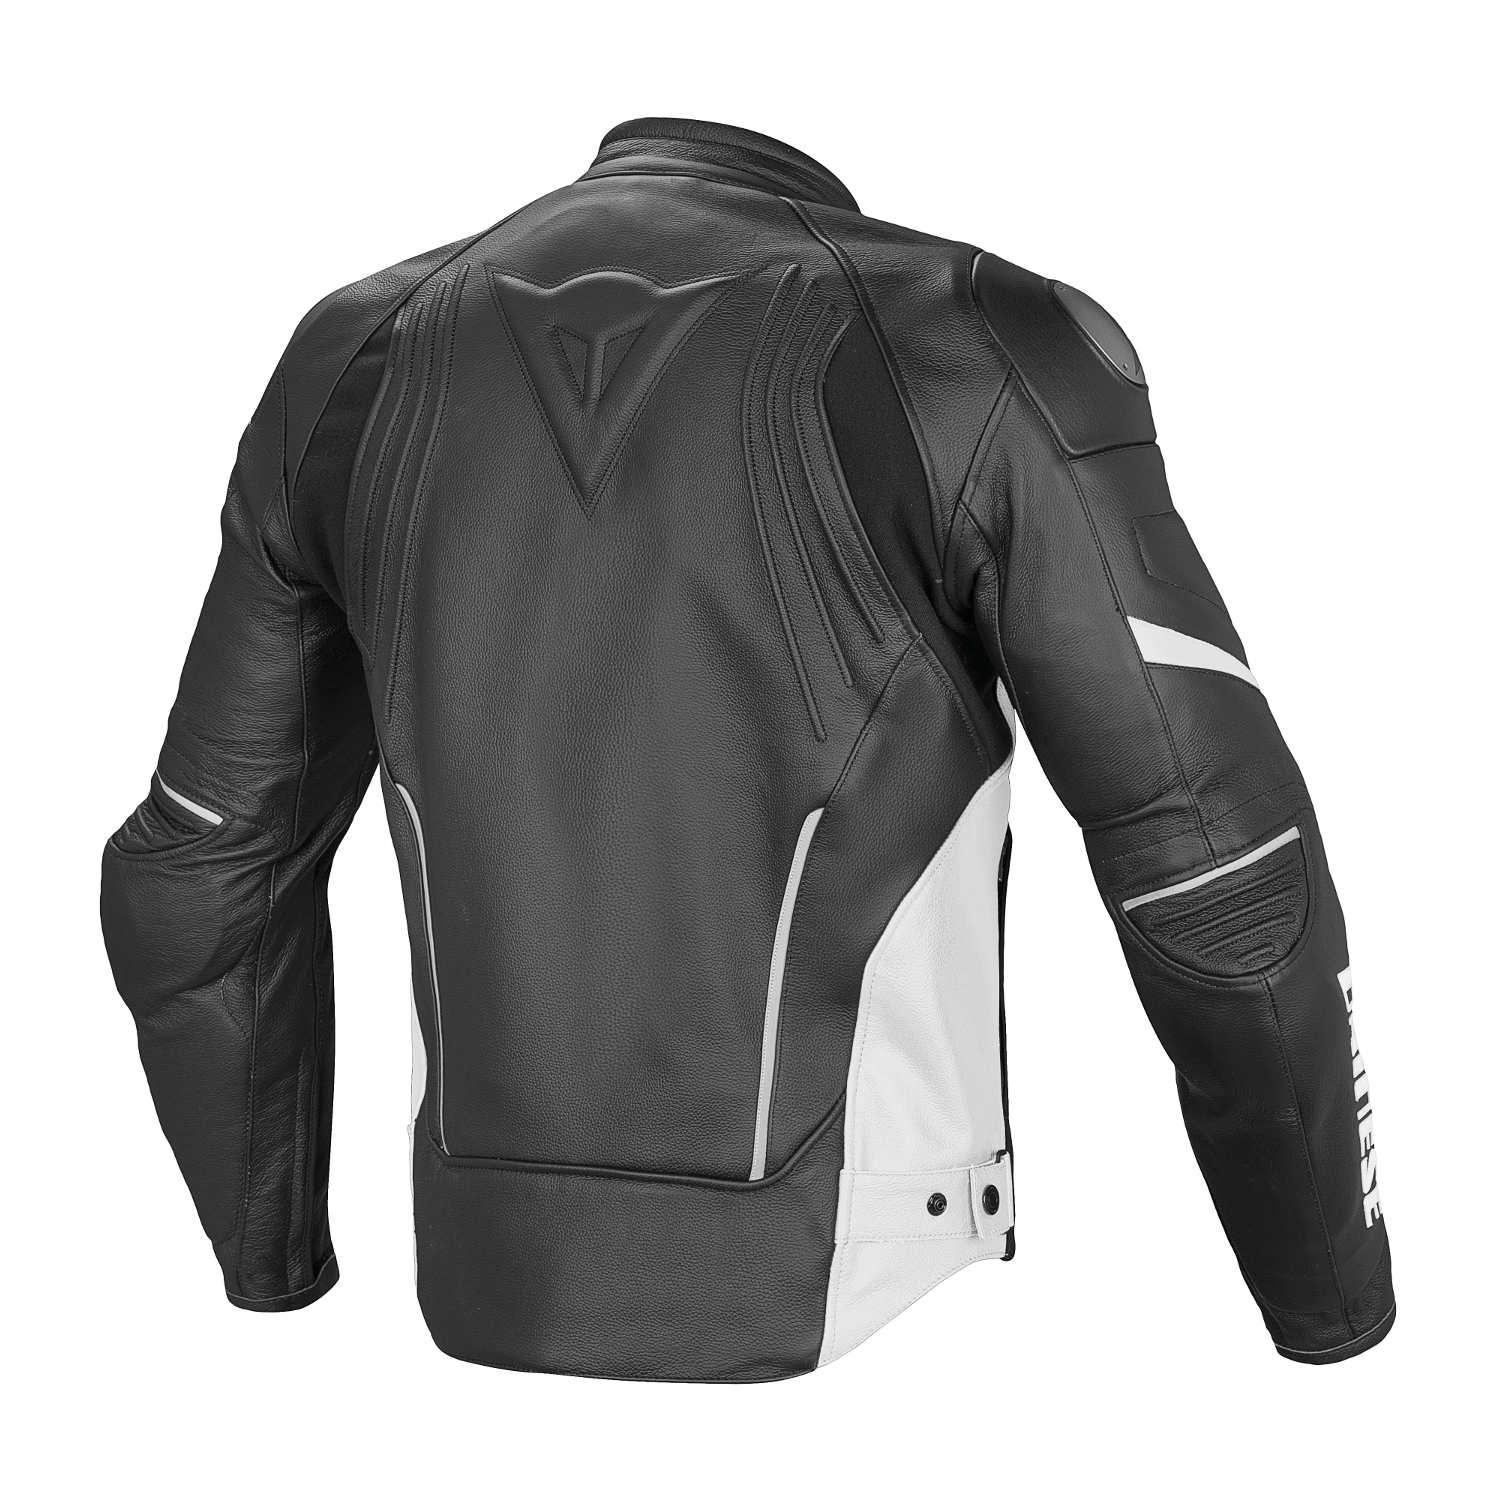 blouson dainese racing d1 pelle noir noir blanc blouson et veste cuir blouson et veste moto. Black Bedroom Furniture Sets. Home Design Ideas